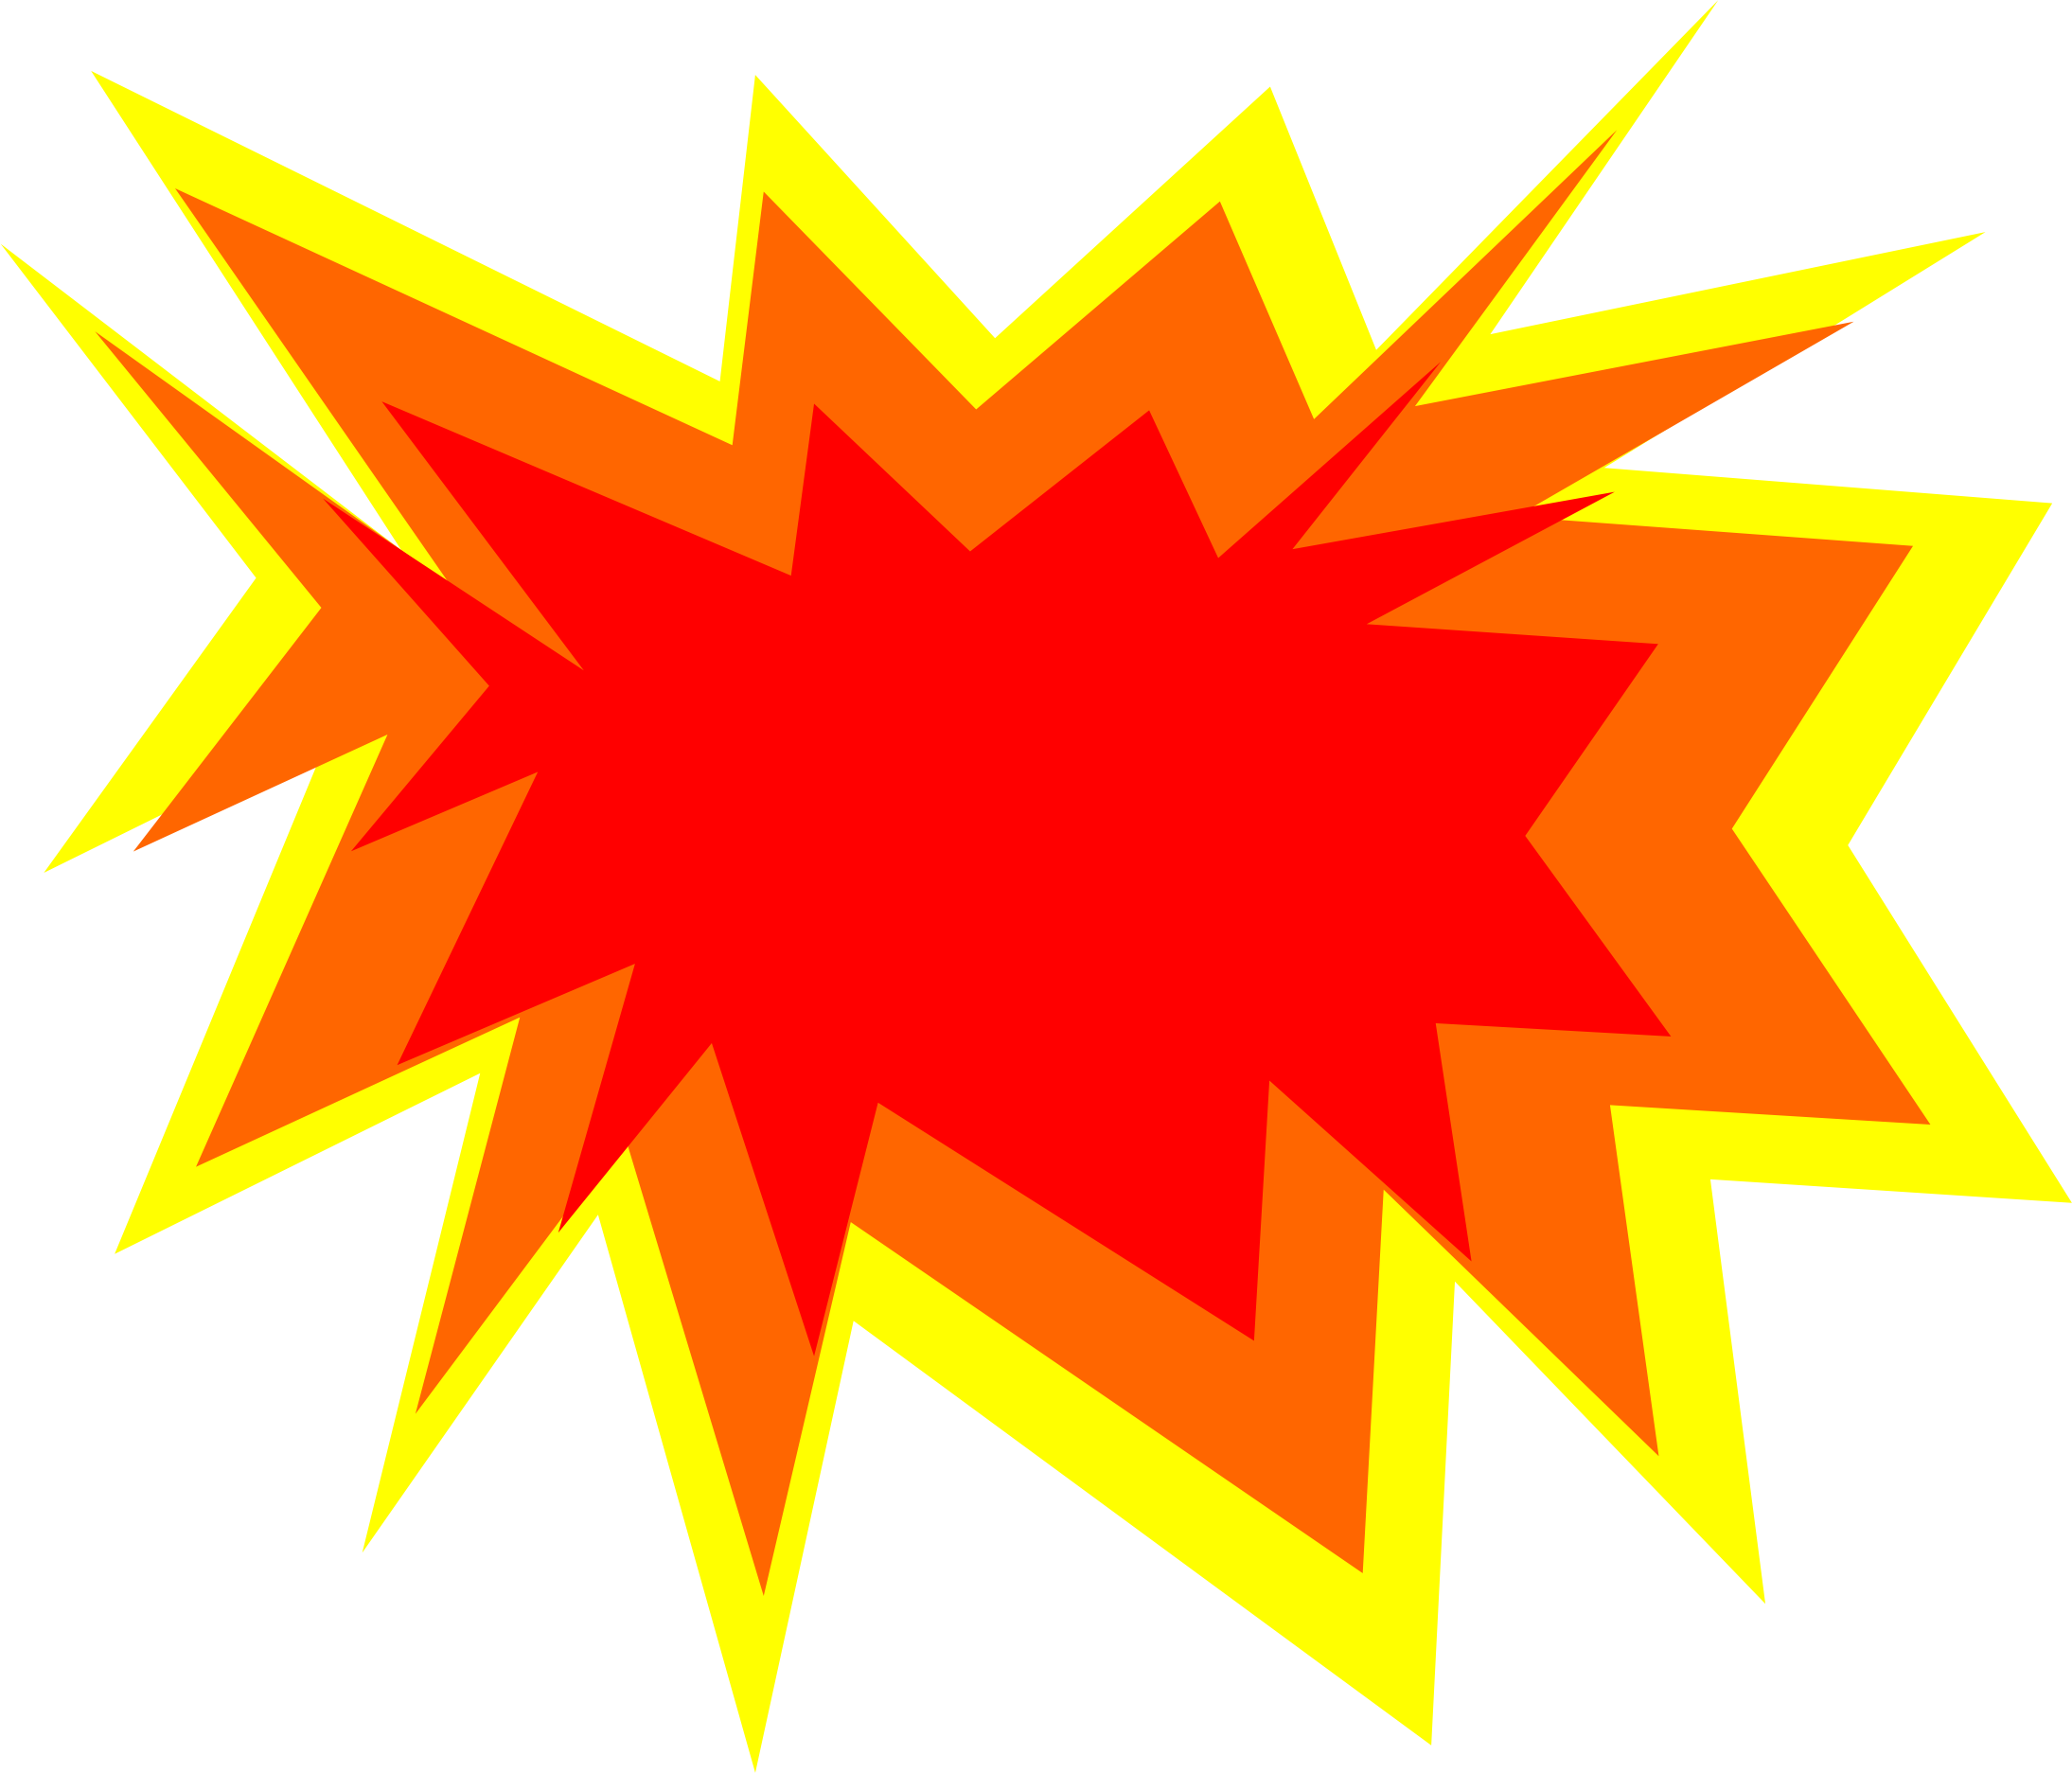 Transparent clipart explosion. At getdrawings com free